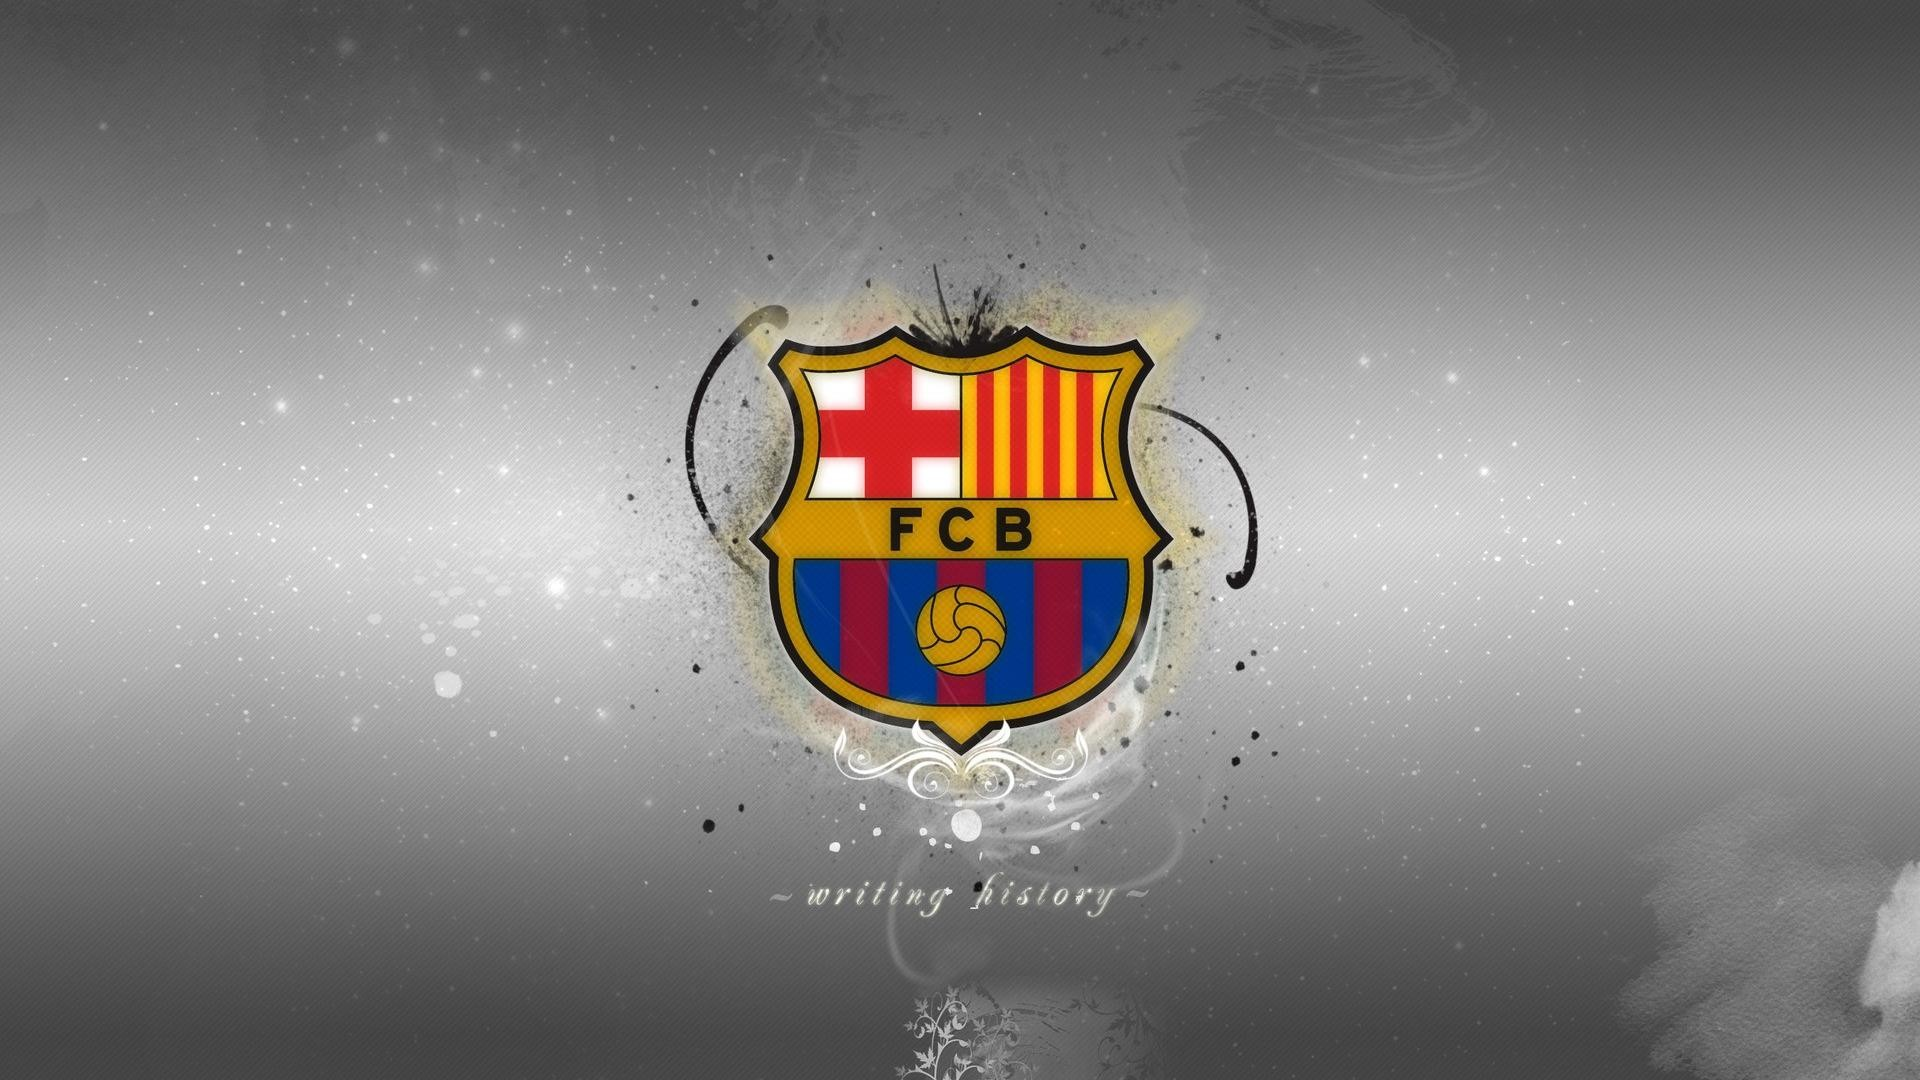 Res: 1920x1080, Fc Barcelona Wallpaper High Quality